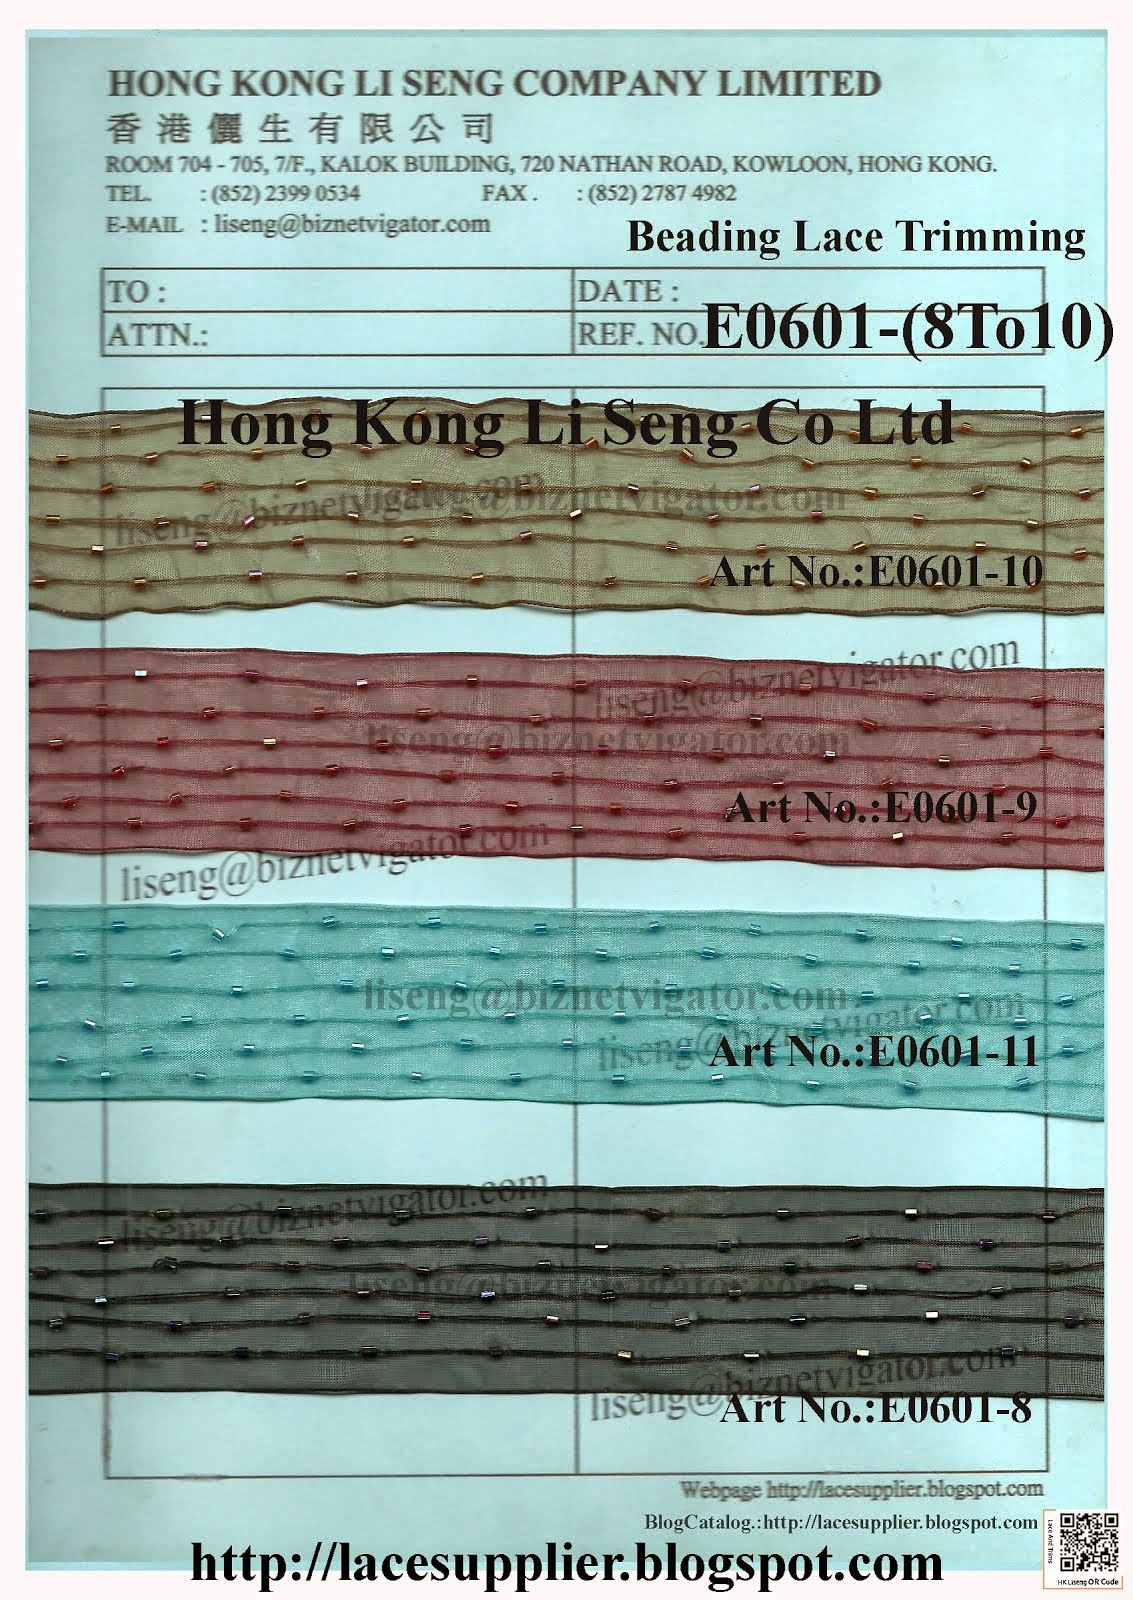 Beading Organza Lace Trimming Wholesale - Hong Kong Li Seng Co Ltd